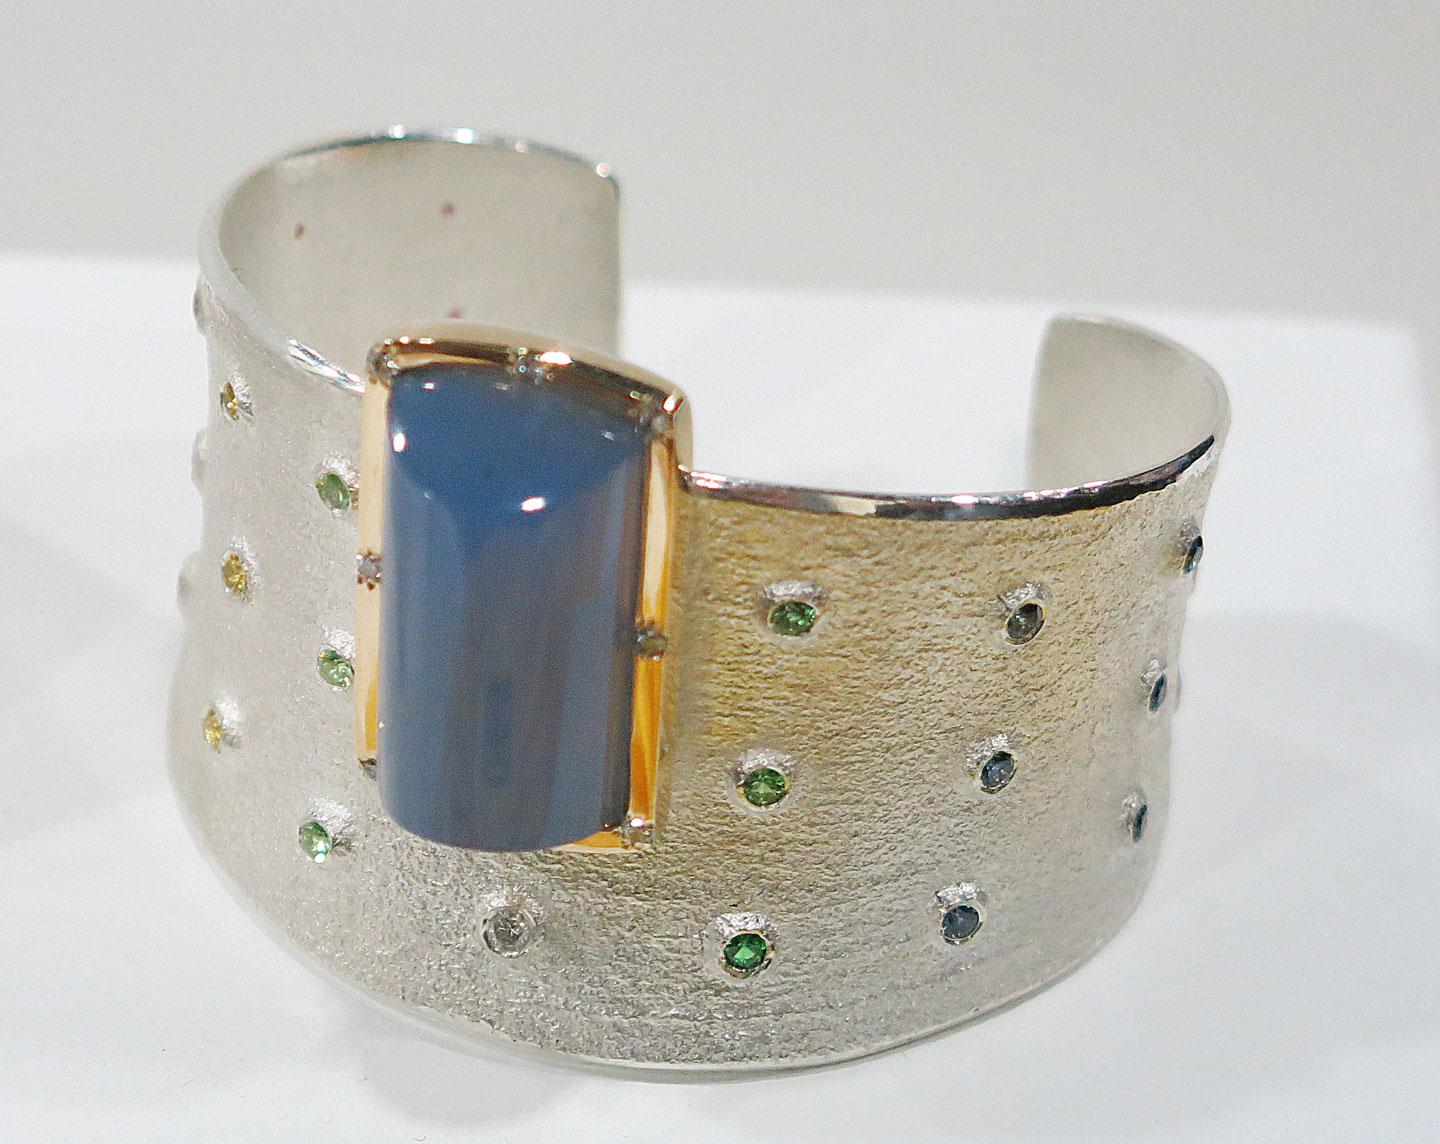 BRACELET by Keri Ataumbi (Kiowa/Comanche), who was the cover feature of Ornament Volume 40.1. Ataumbi was awarded an Honorable Mention in the Jewelry and Lapidary category.   www.ornamentmagazine.org/shop/ornament-print-edition-volume-401